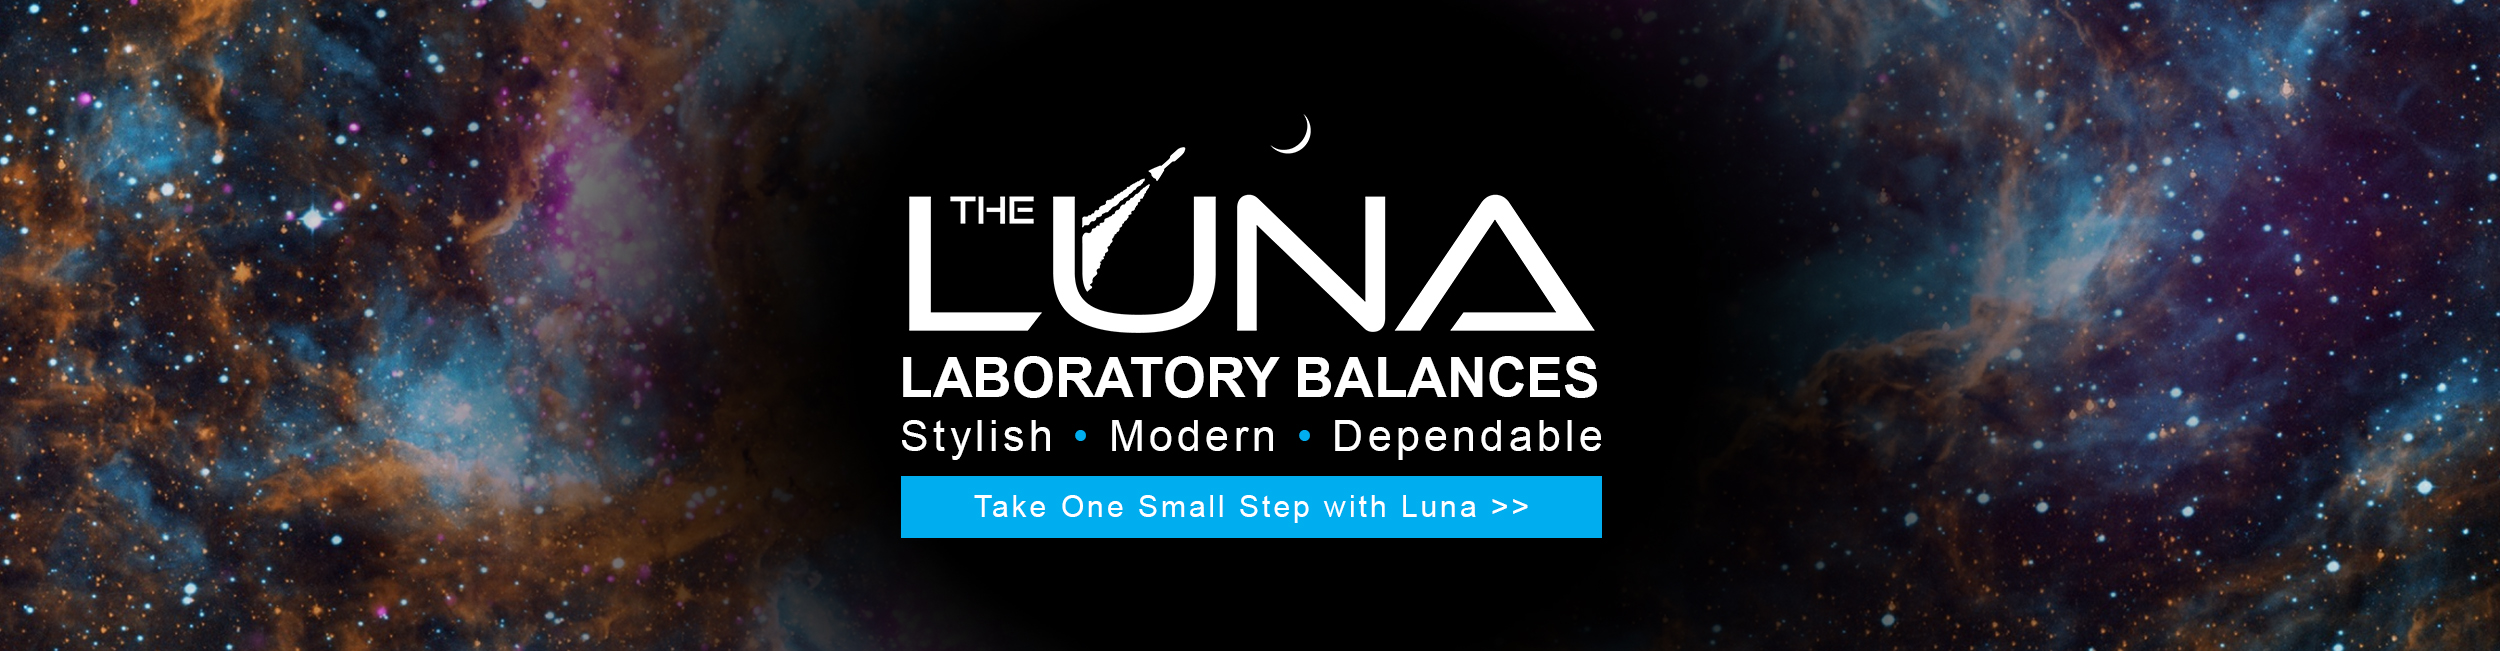 Luna Laboratory Balances - Stylish : Modern : Dependable